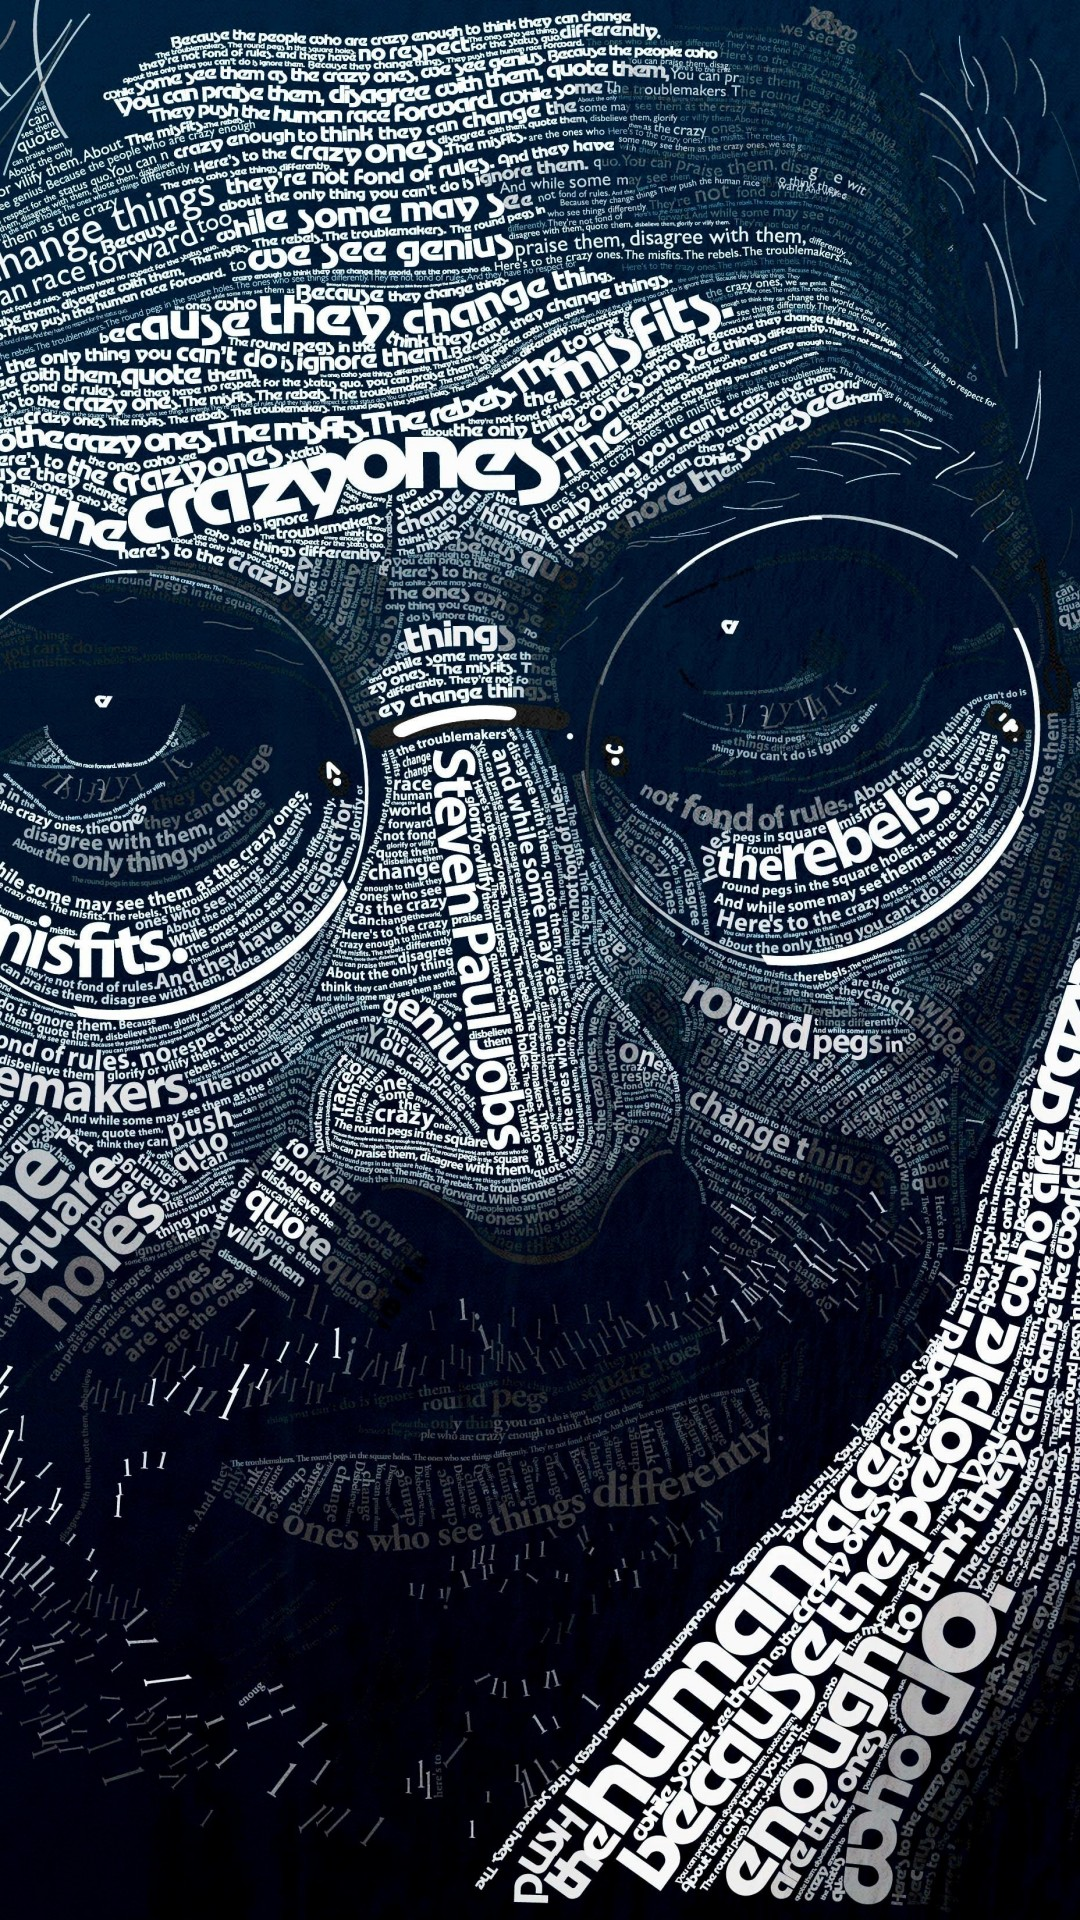 Steve Jobs Typographic Portrait Wallpaper for SAMSUNG Galaxy Note 3